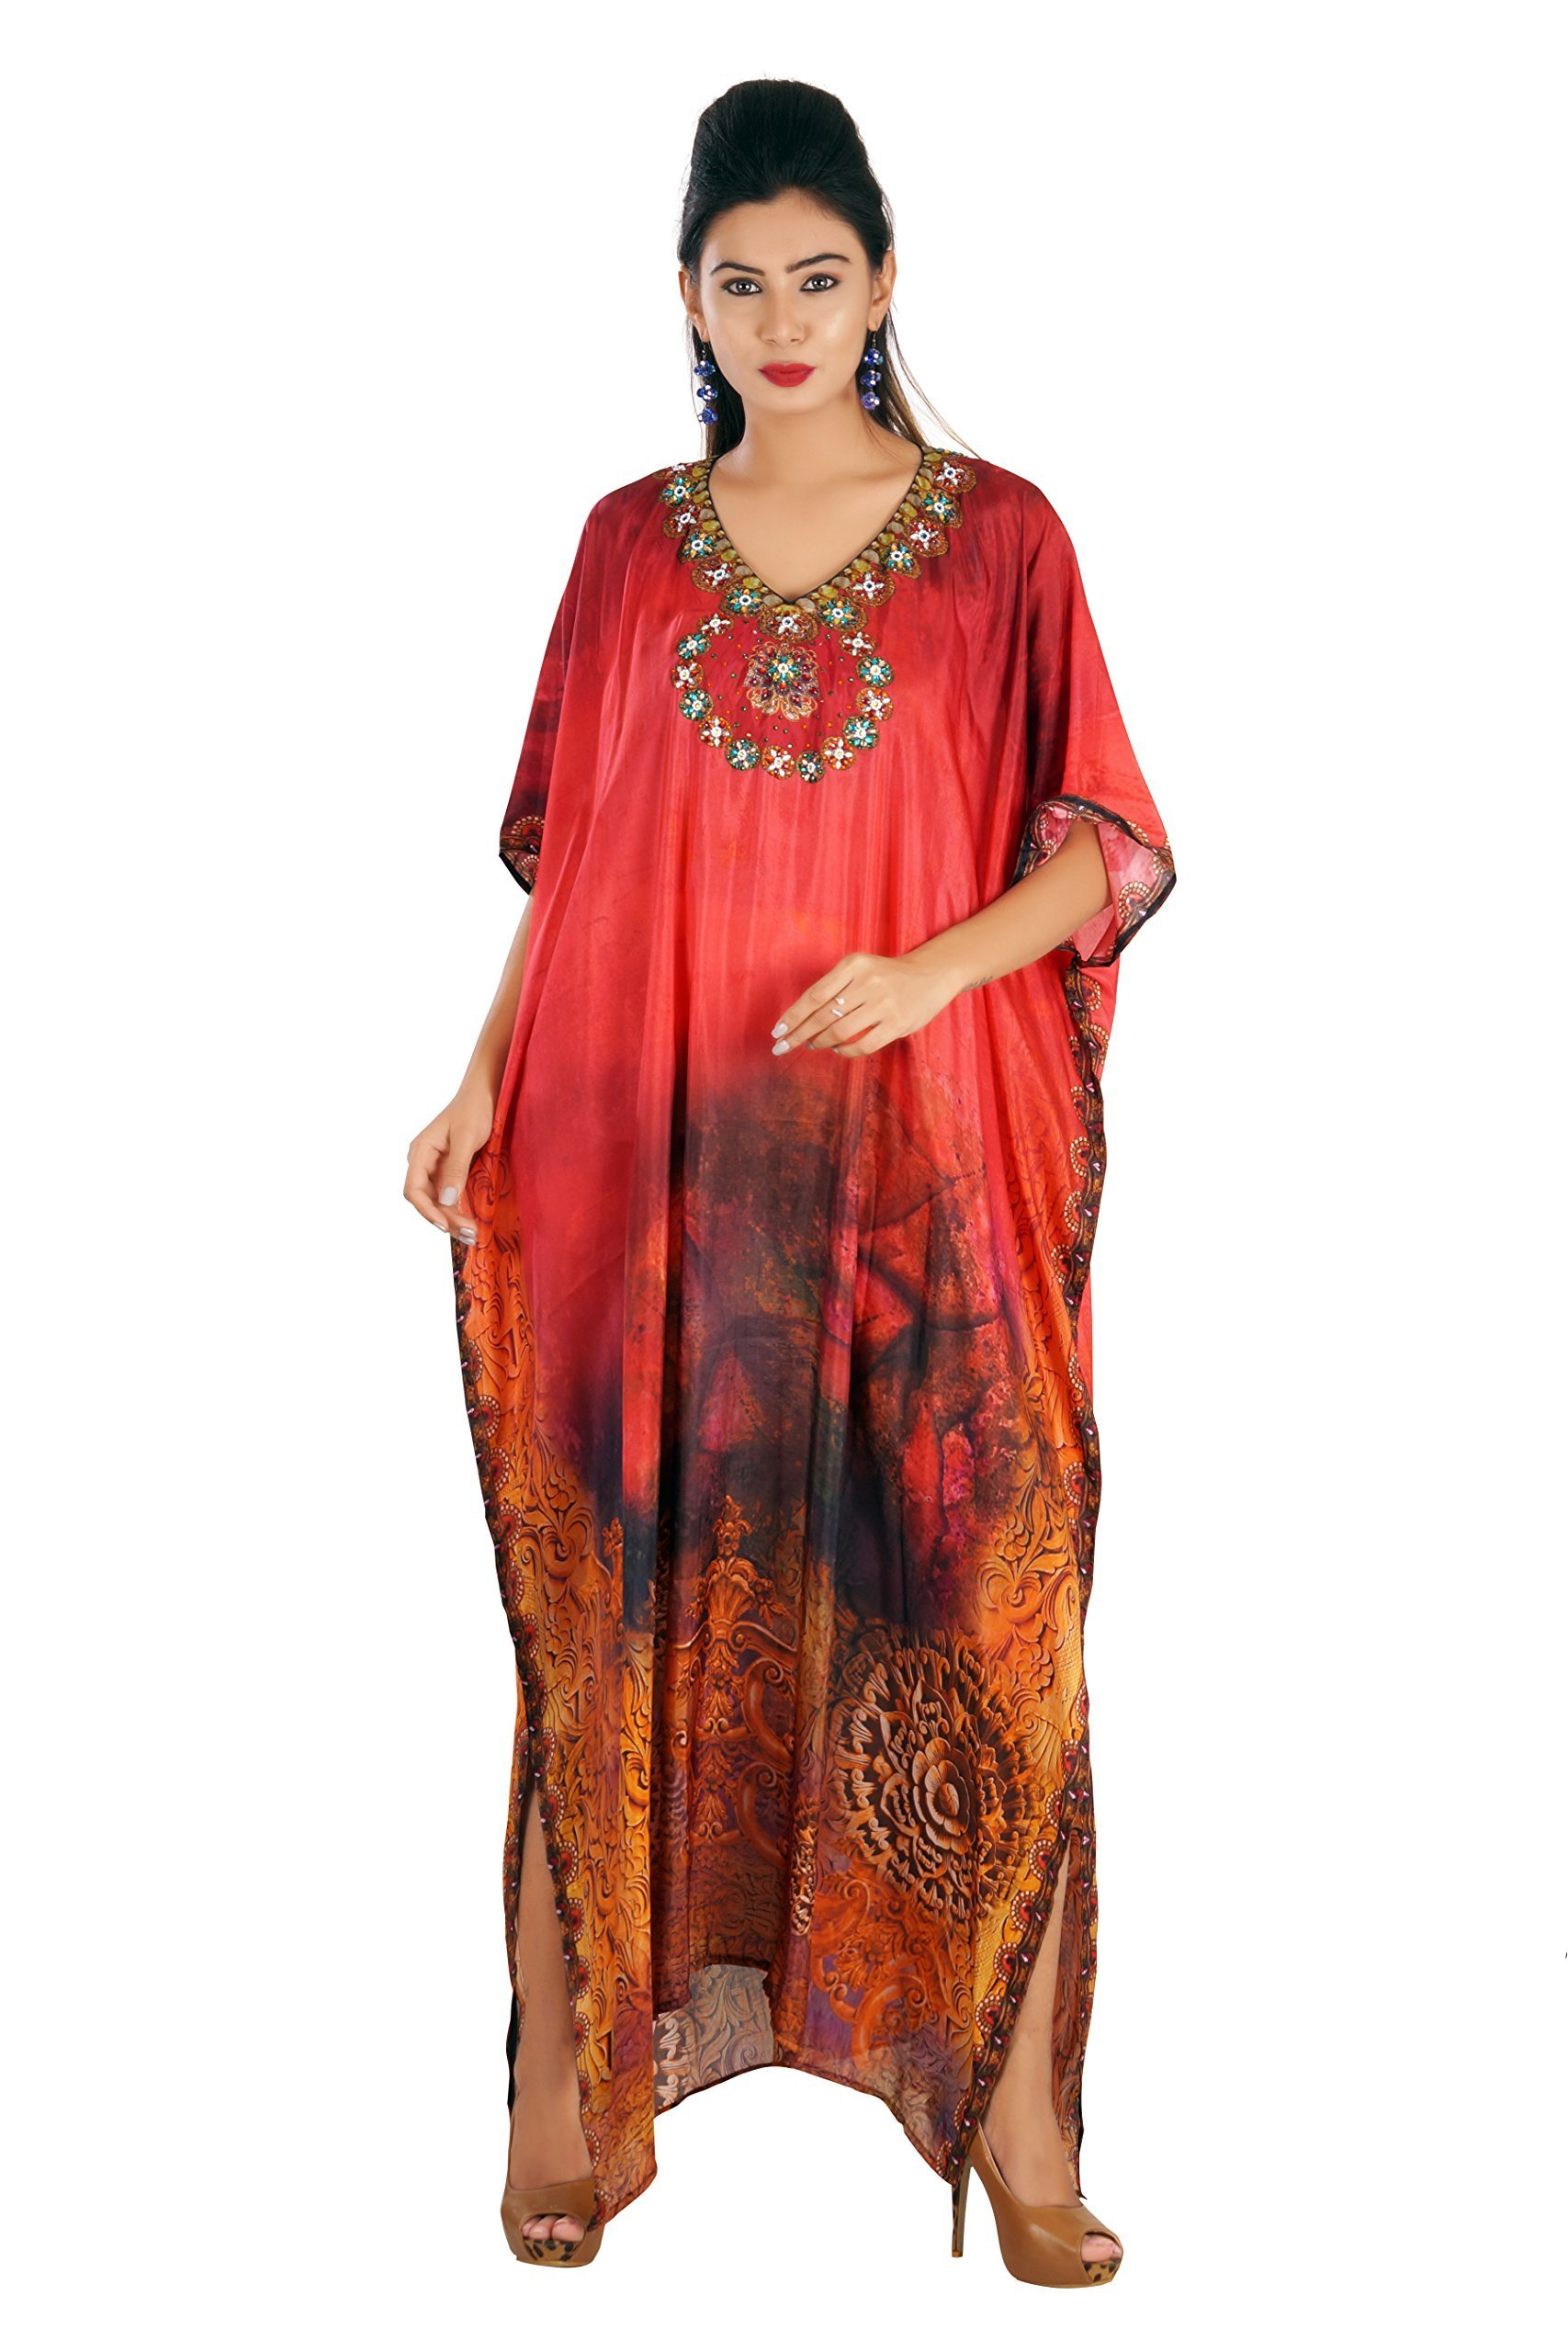 New printed kaftan designer silk kaftan crystal embellished long dress beach wear 284